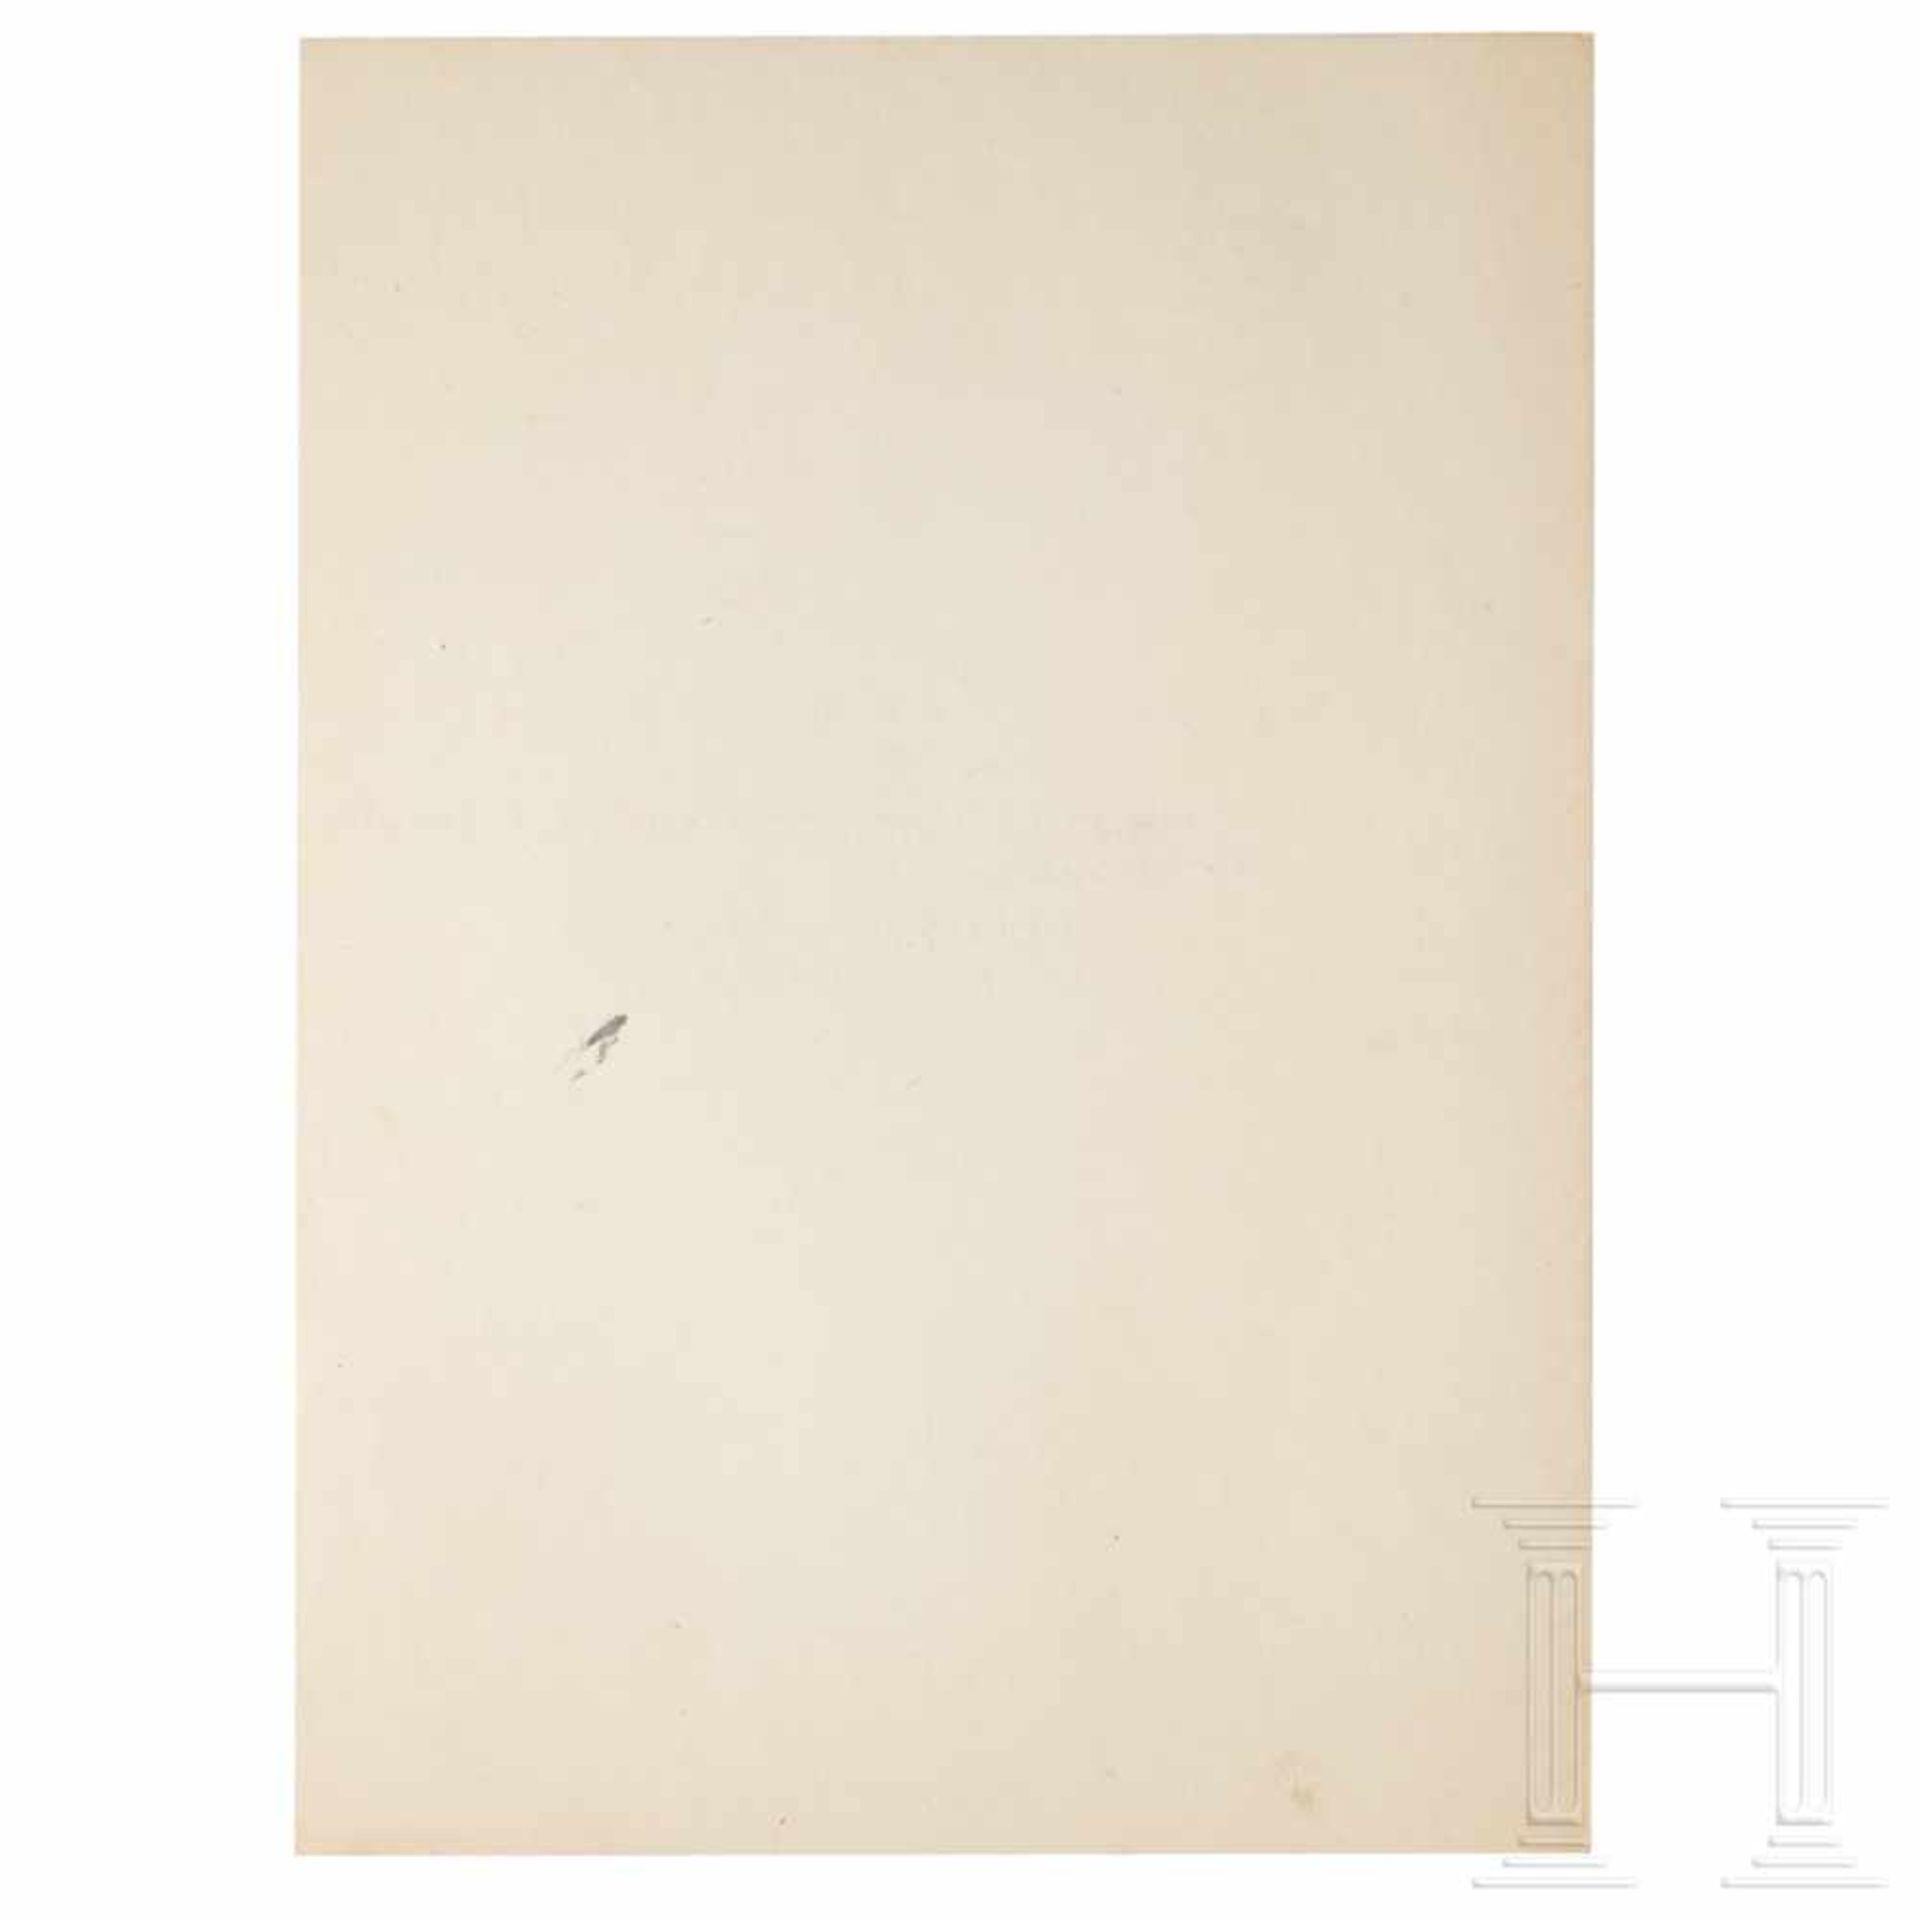 Los 6022 - Göring's certificate of appointment to Reichsminister without portfolio and to Reichskommissar for